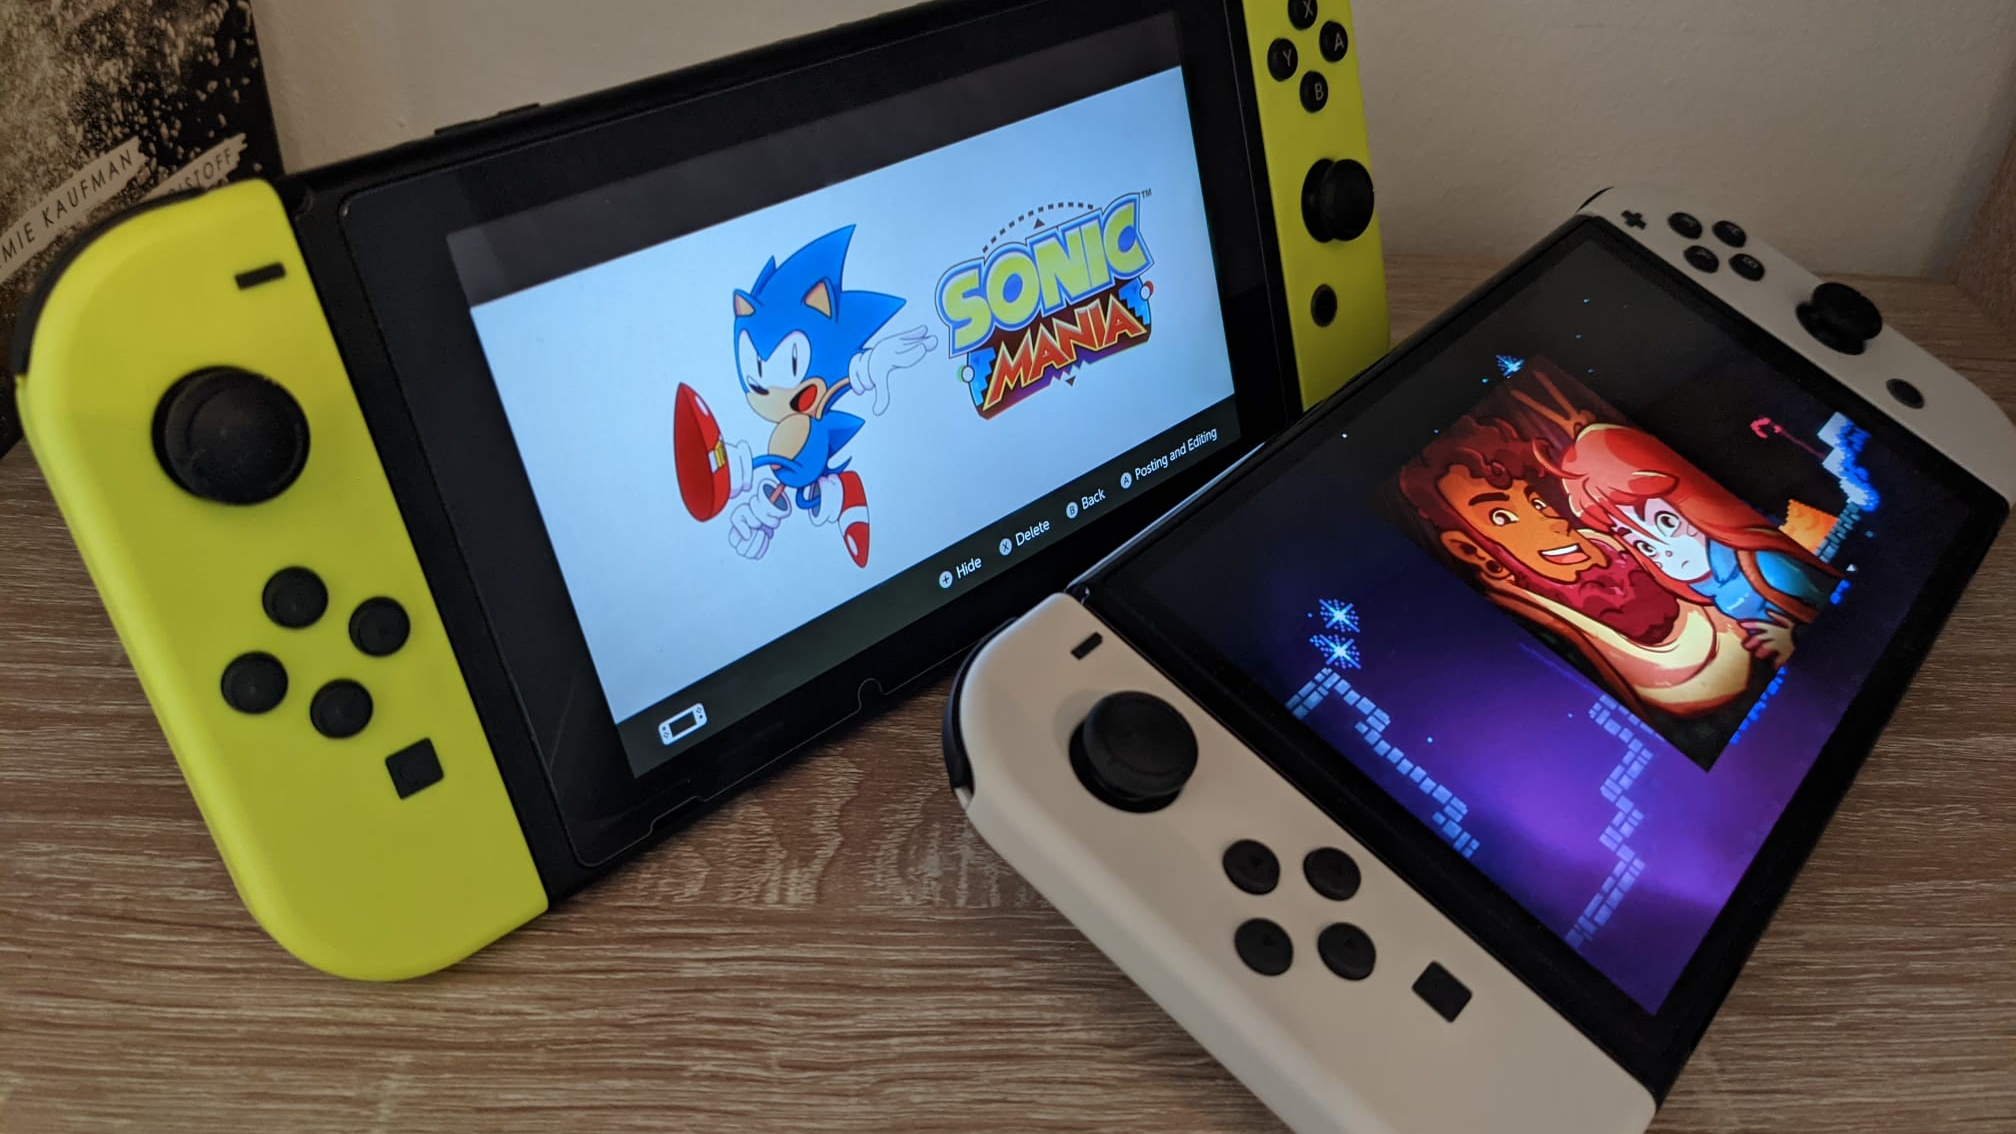 Nintendo Switch OLED showing Celeste and old Switch showing Sonic Mania